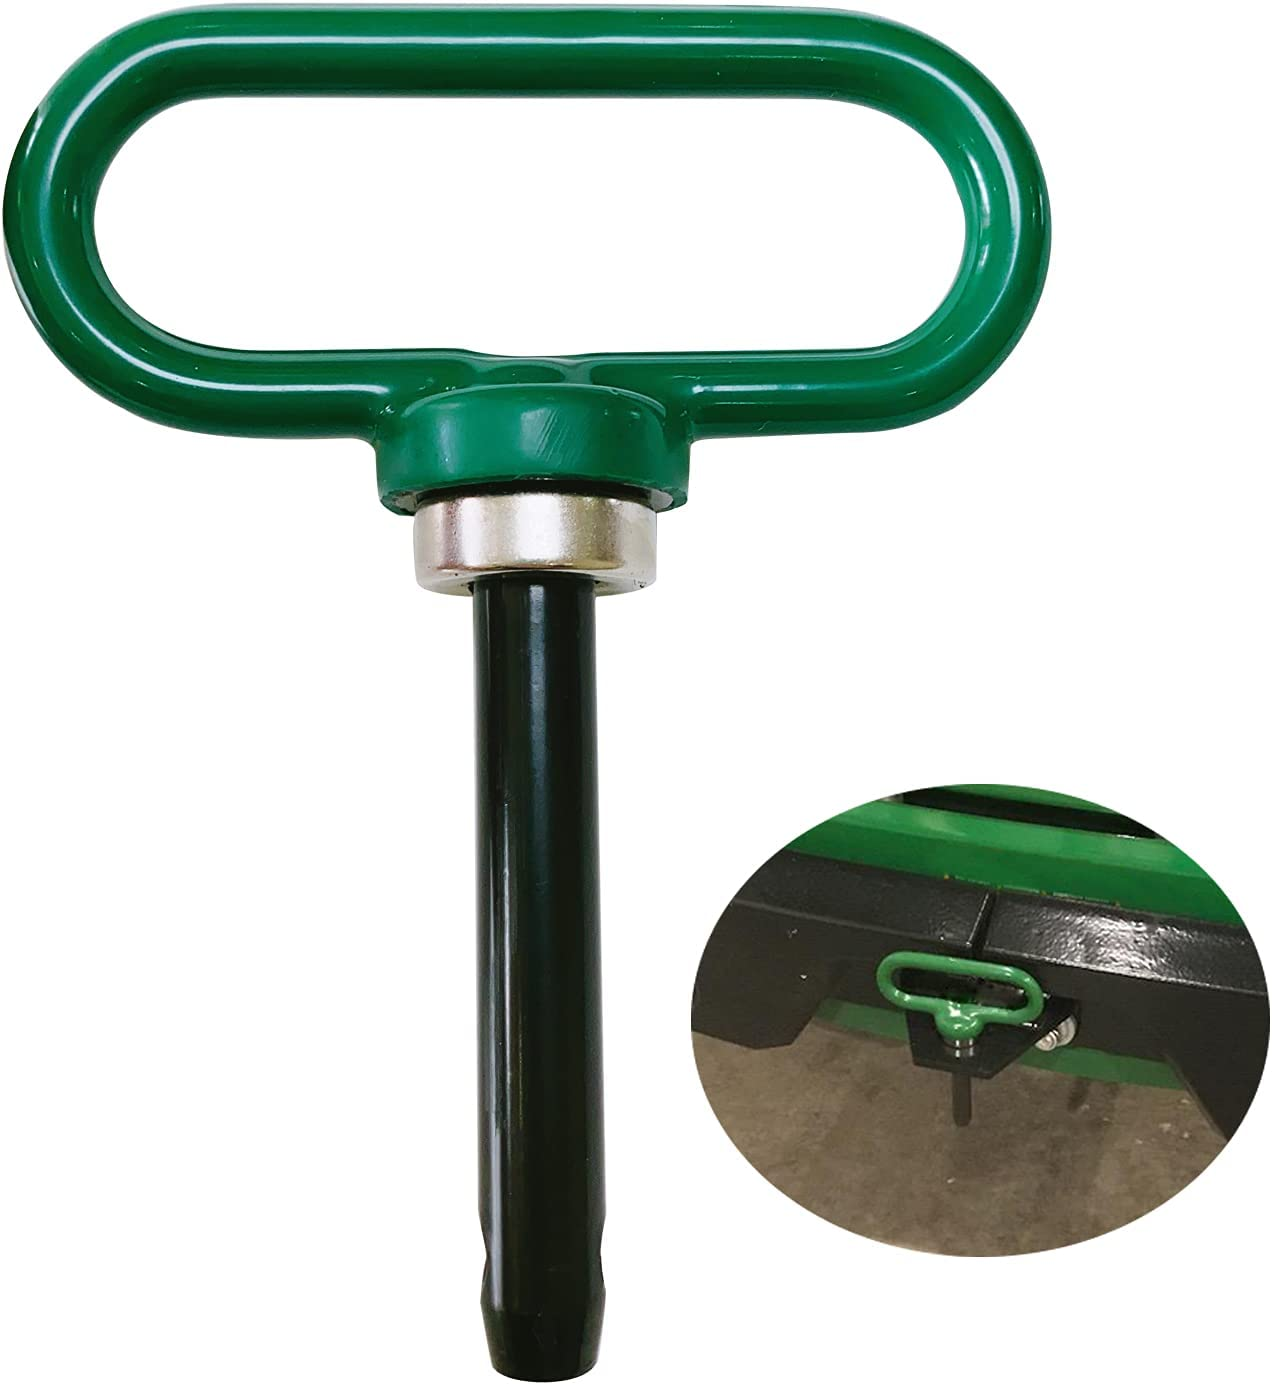 Fivepine Lawn Mower Trailer Hitch Pins Strong Magnet Fixed Garden Tractor Hitch Pin